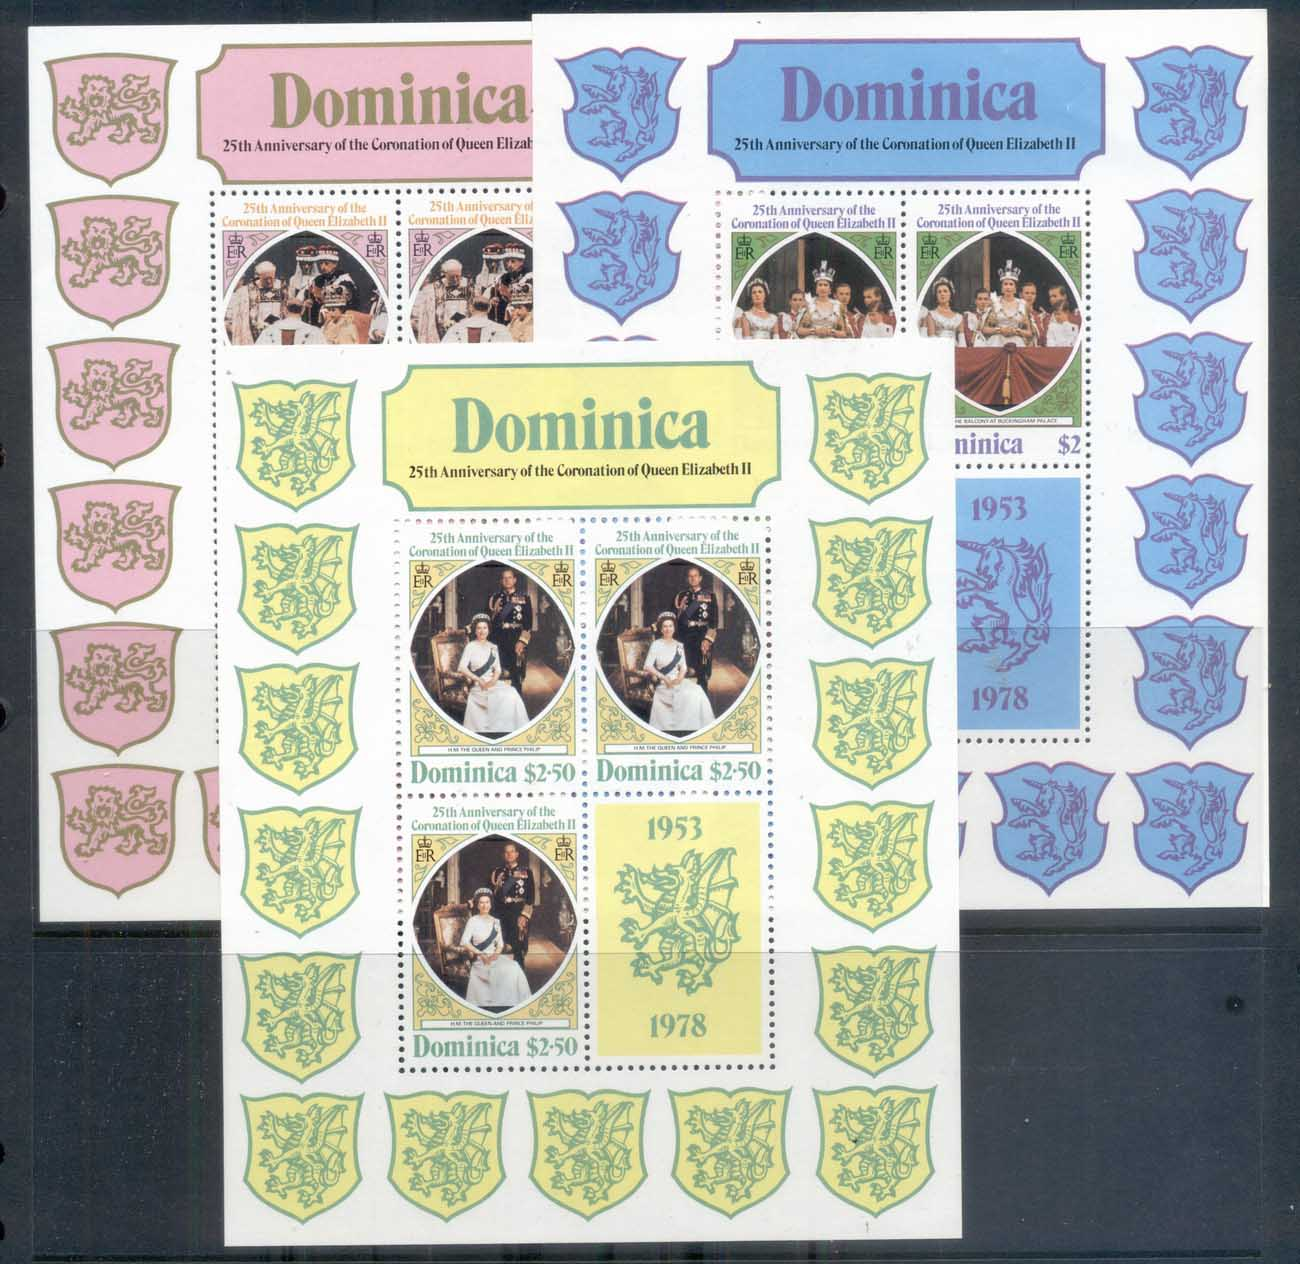 Dominica 1978 QEII Coronation 25th Anniversary 3xsheetlet MUH